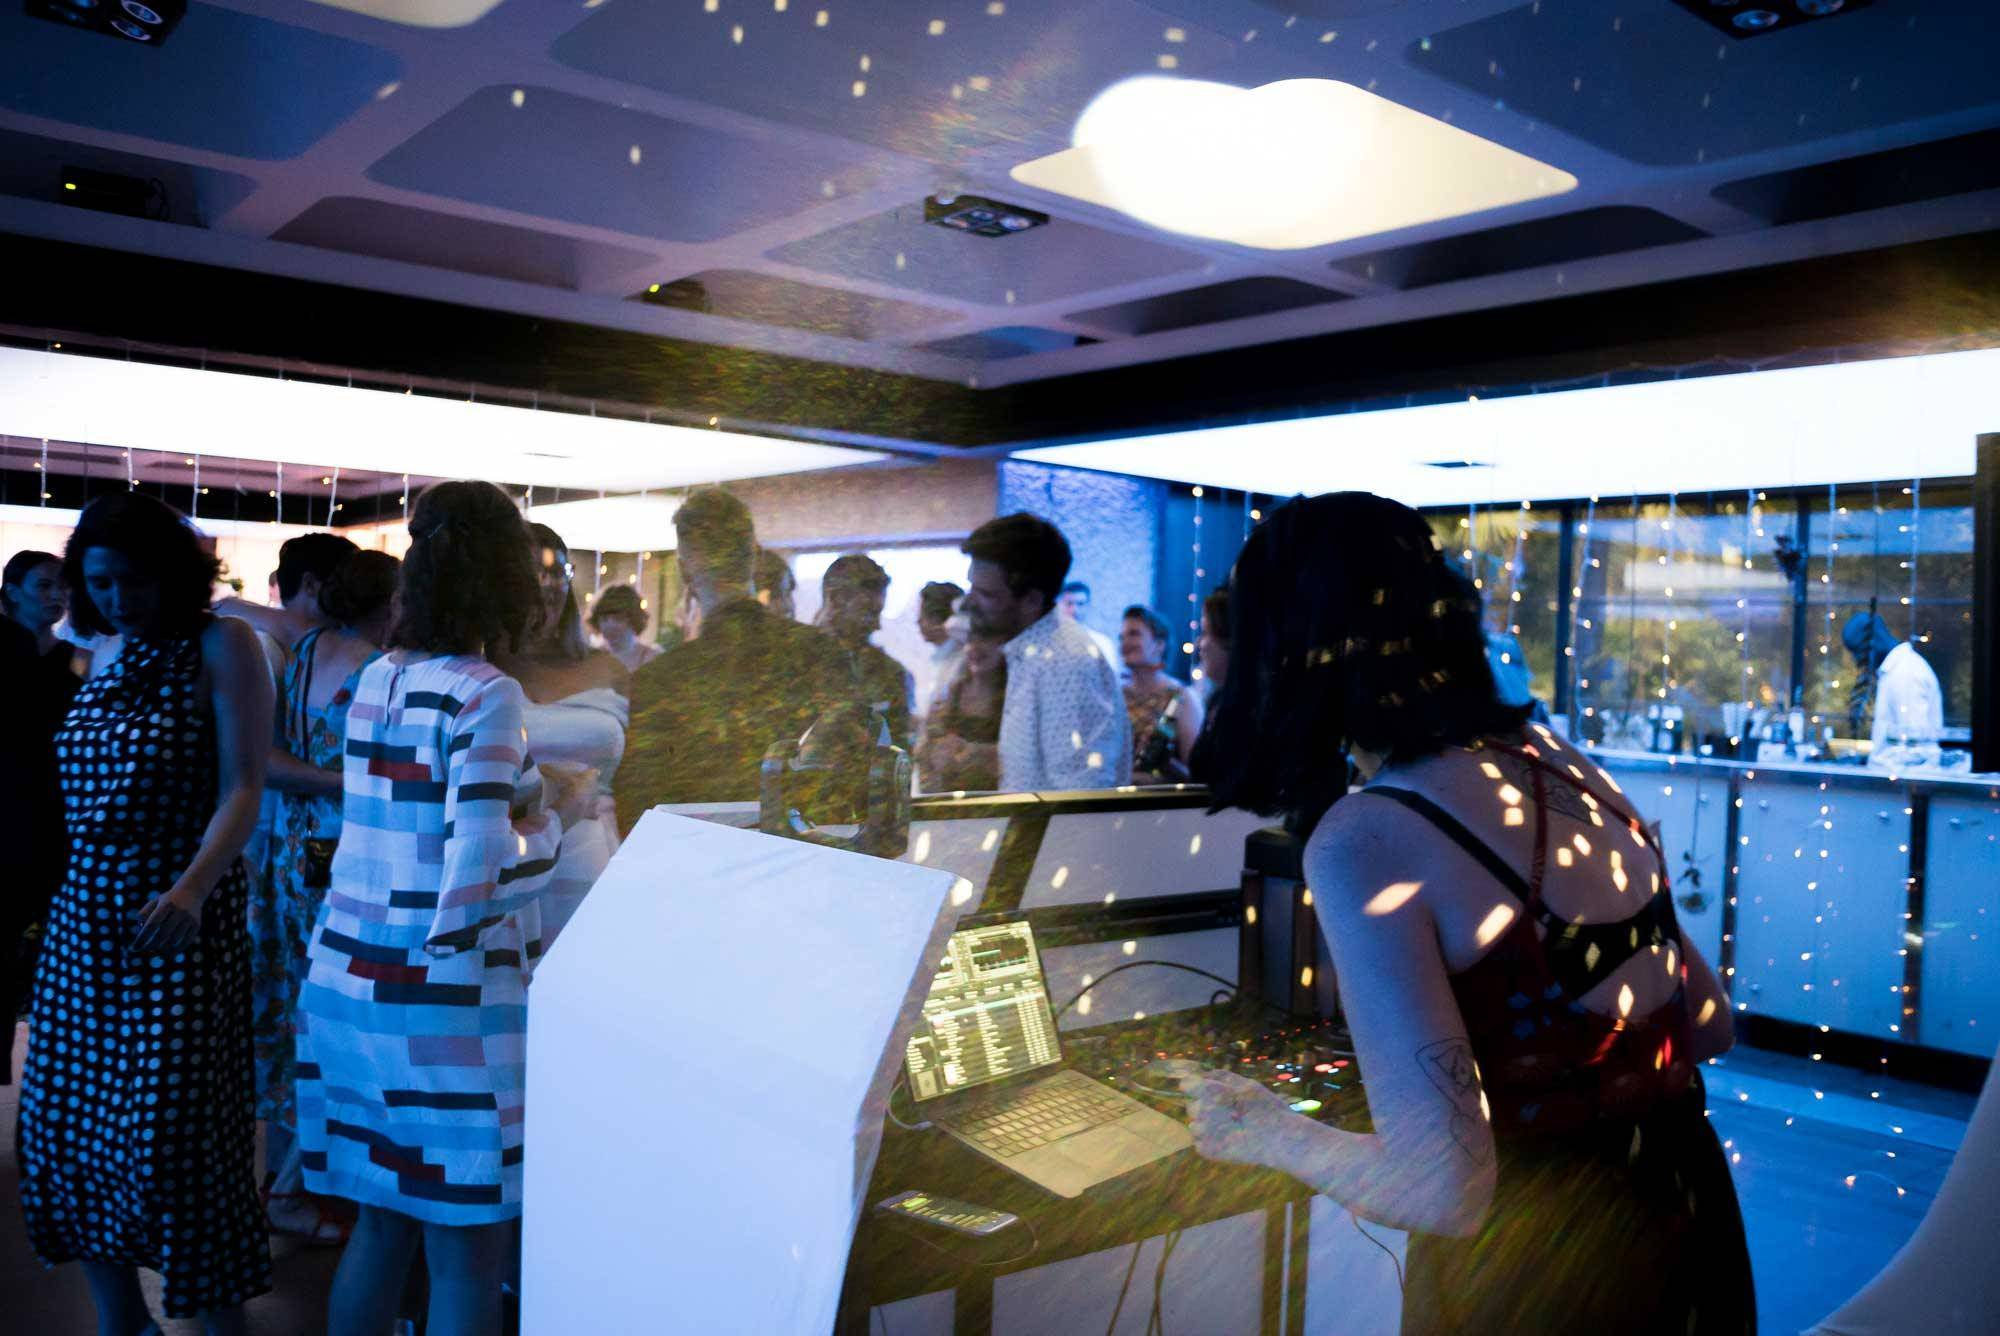 Ask The Experts: The Five Most Important Questions To Ask Your Wedding DJ with RedLine DJs